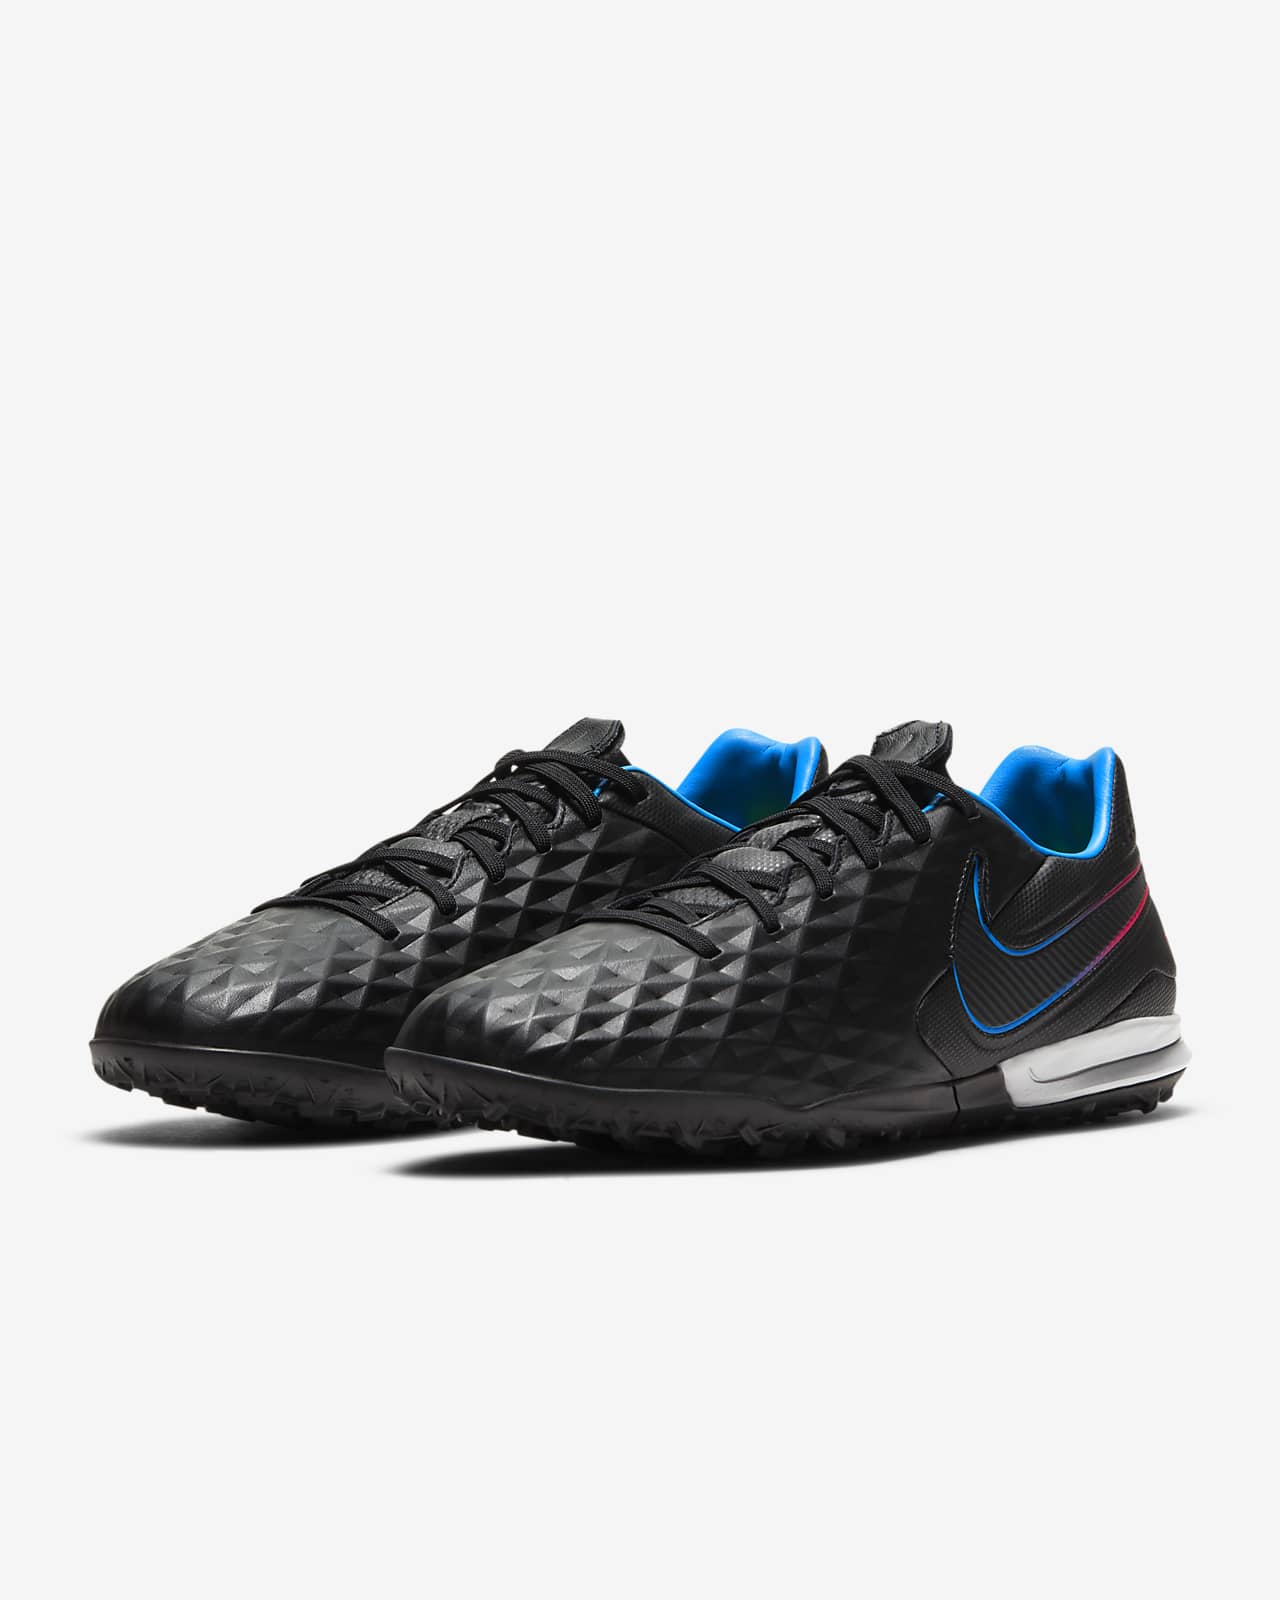 Nike Tiempo Legend 8 Pro TF Artificial-Turf Soccer Shoes